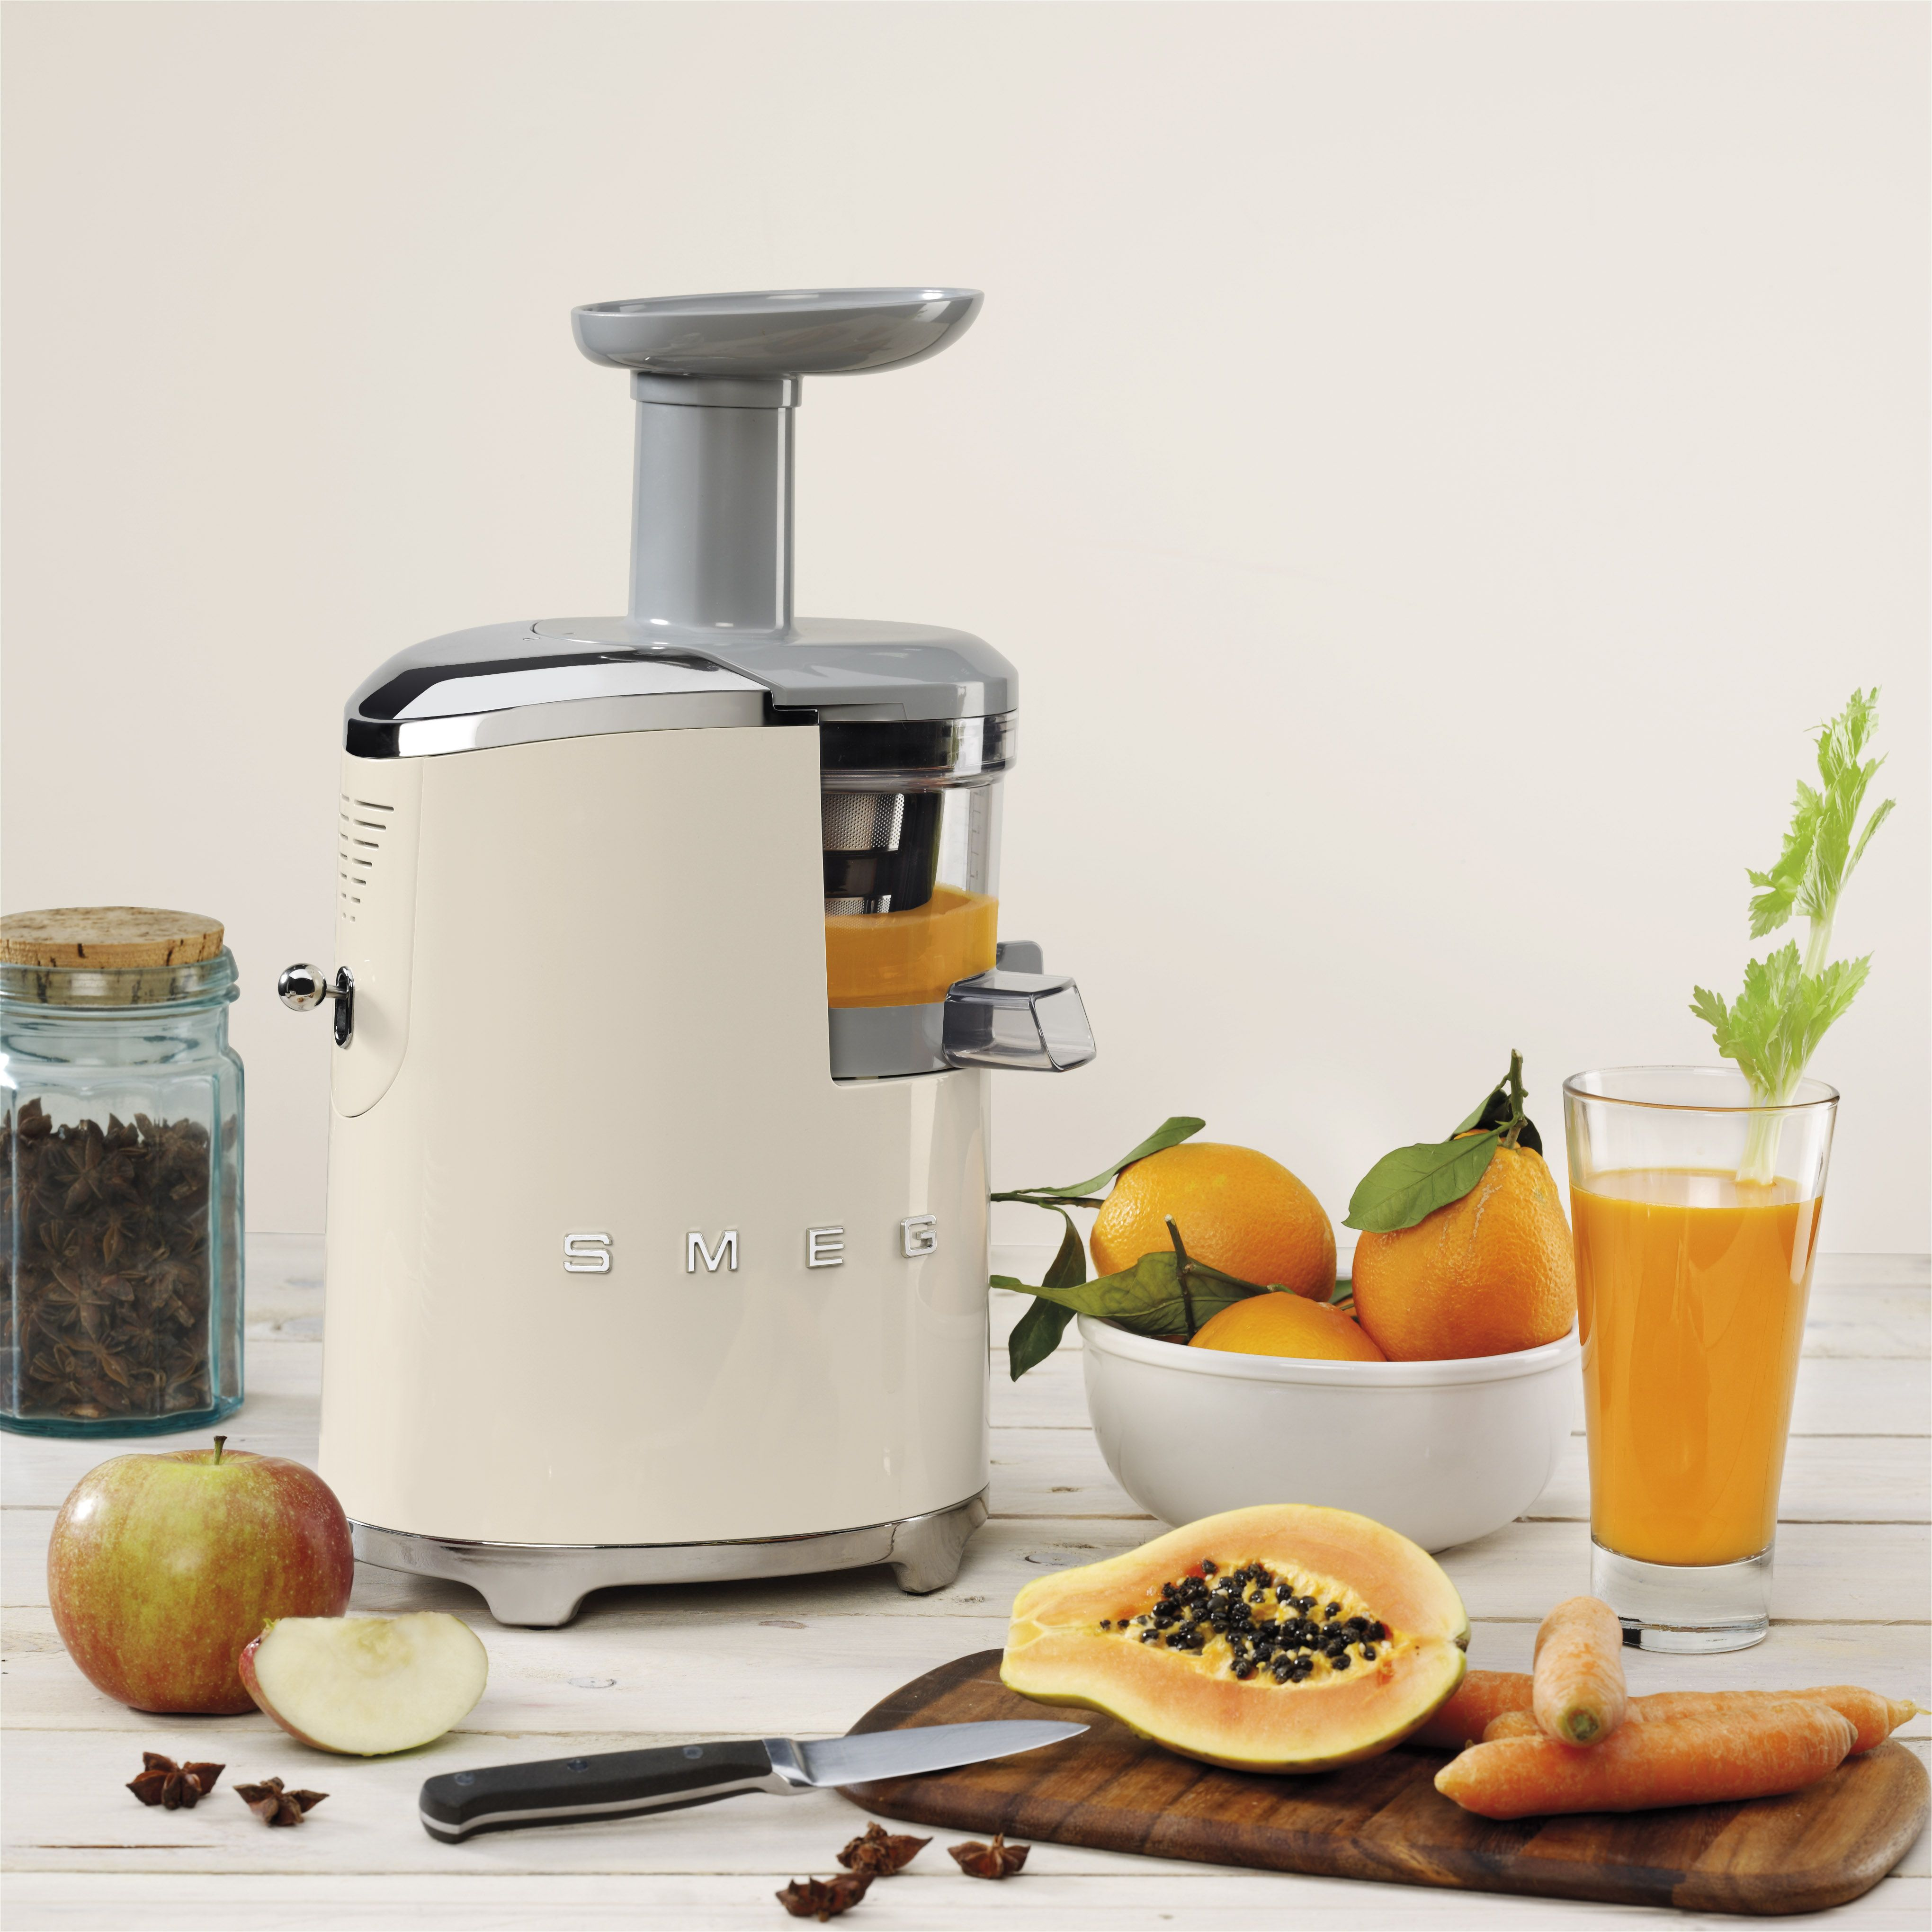 Retro Kitchen Small Appliances Save All The Vitamins With Our Slow Juicer Smeg Small Appliances